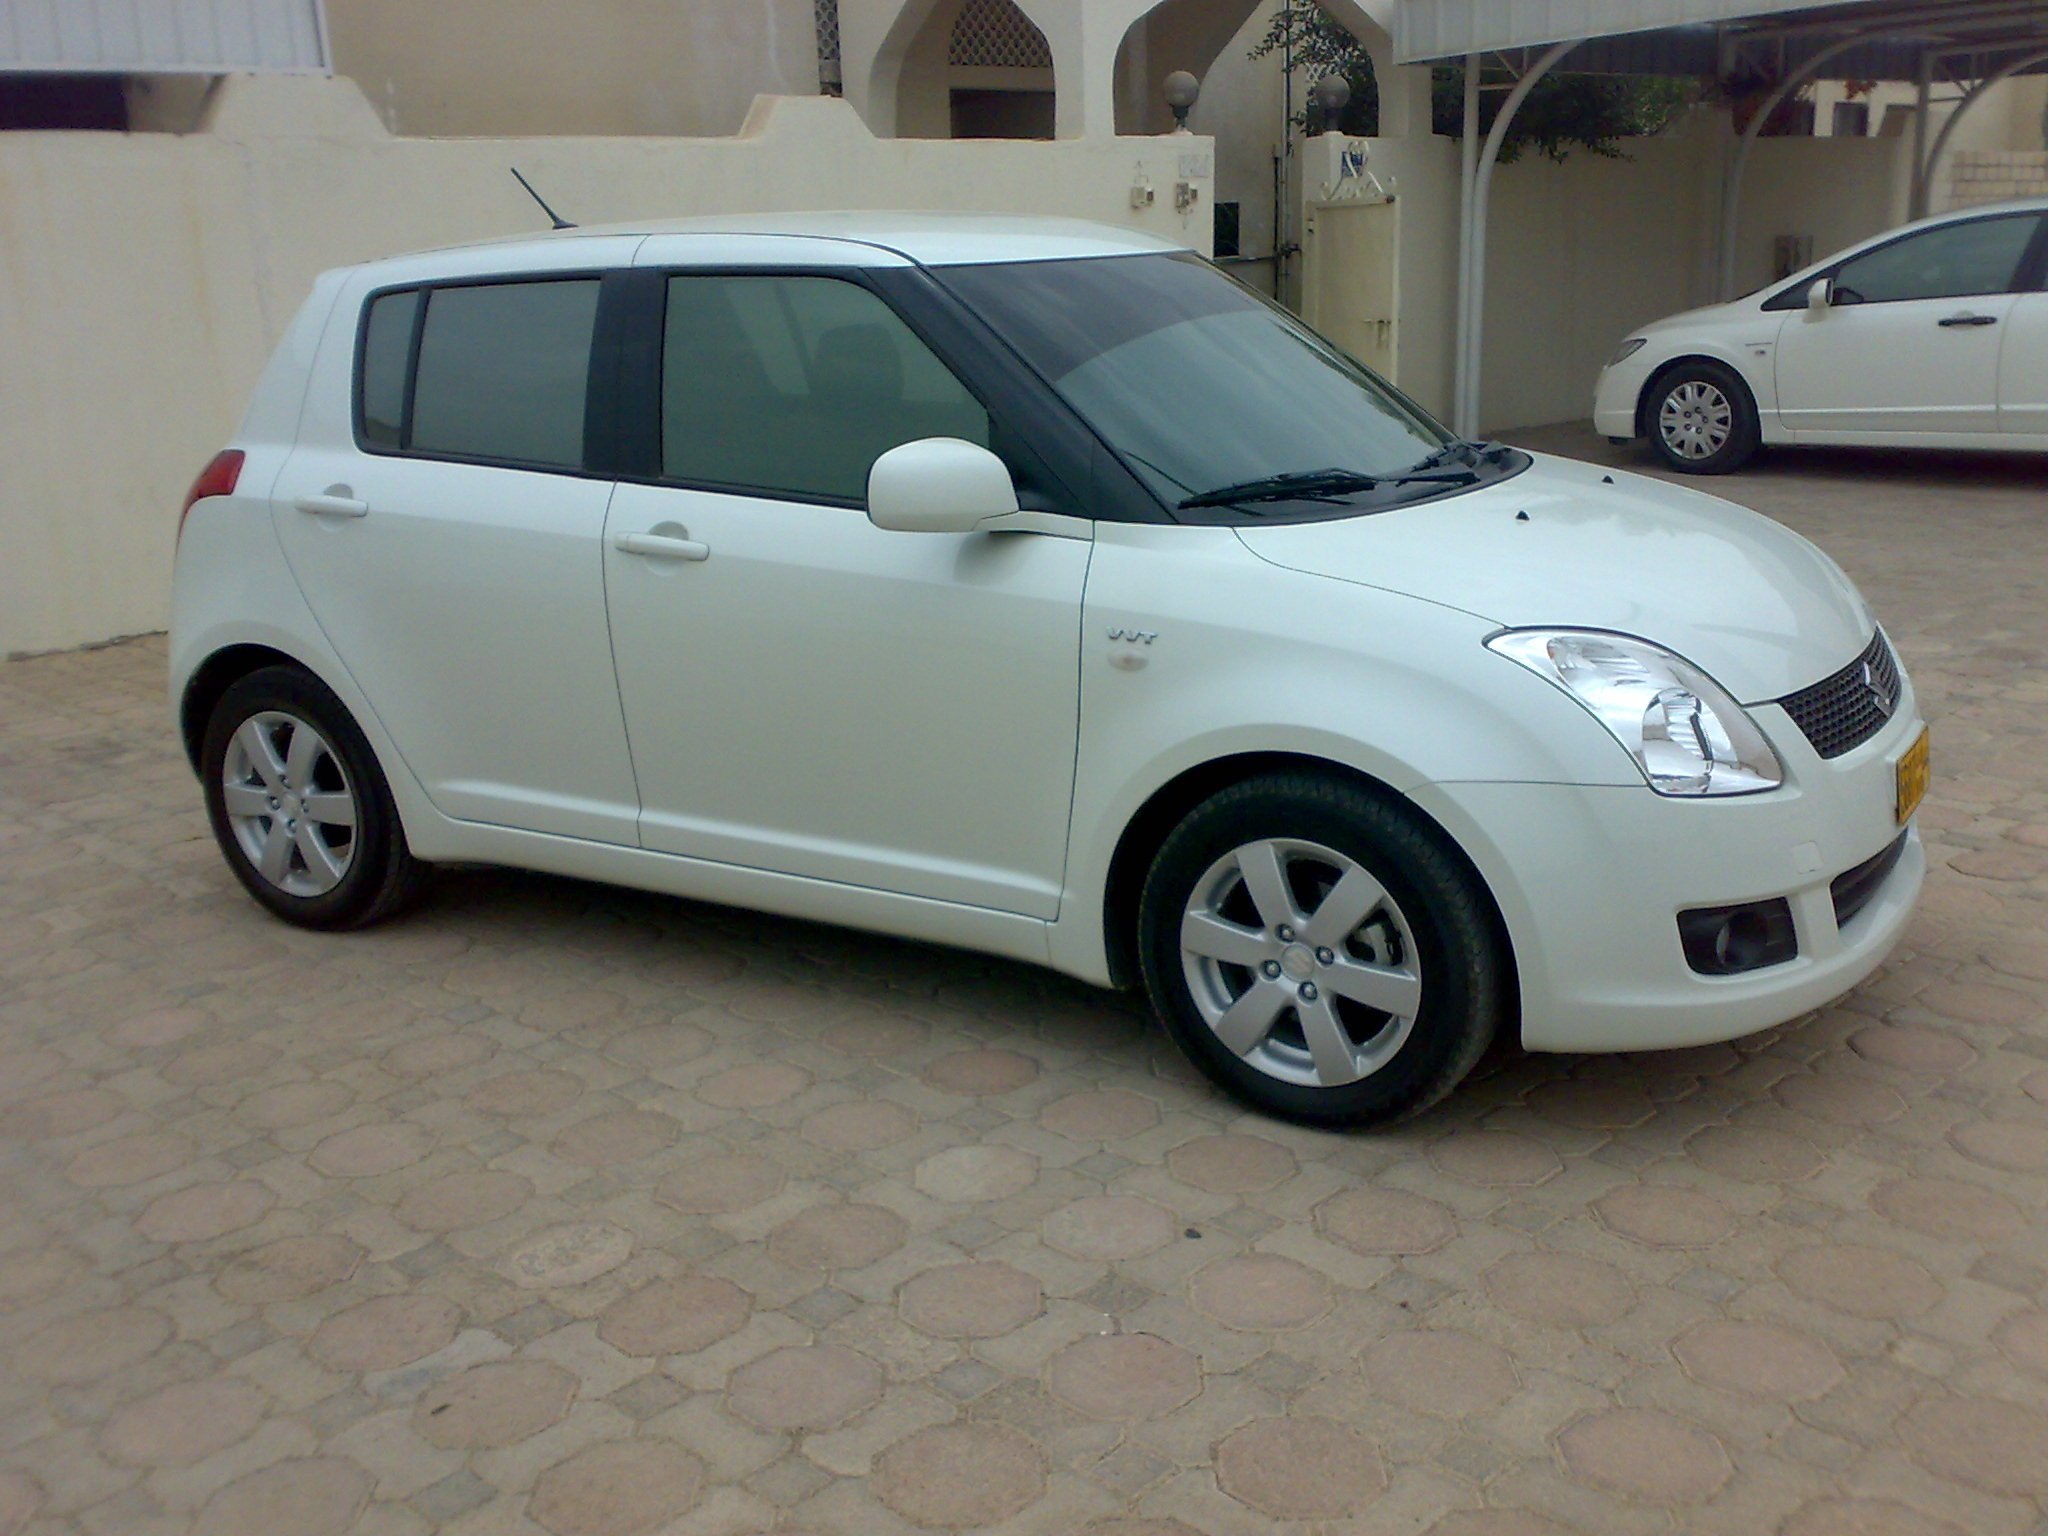 z8x5oman 2008 suzuki swift specs photos modification info at cardomain. Black Bedroom Furniture Sets. Home Design Ideas